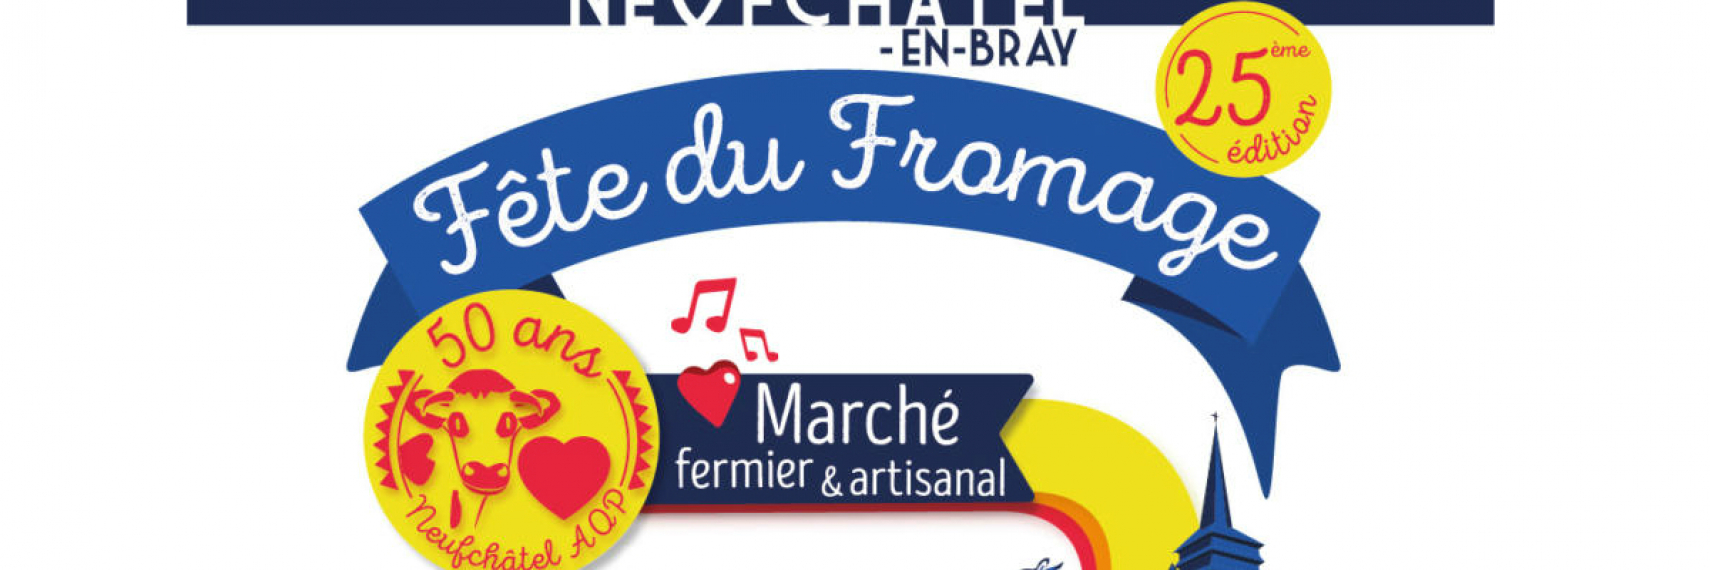 Fete fromage Neufchatel 2019